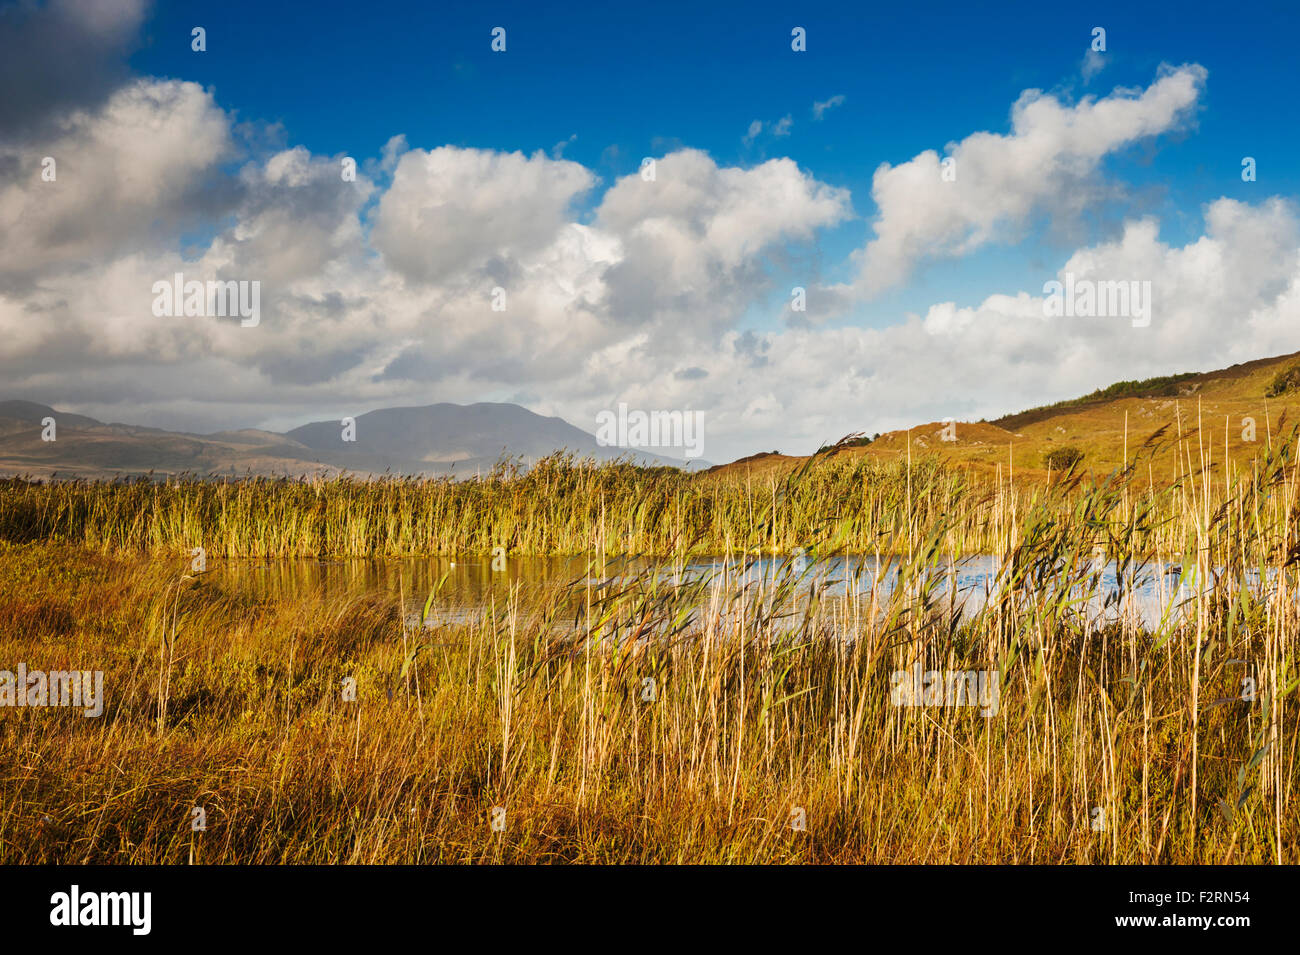 View eastwards over reeds from Cahergarriff towards Hungry Hill, Beara Penisula, County Cork, Ireland - Stock Image